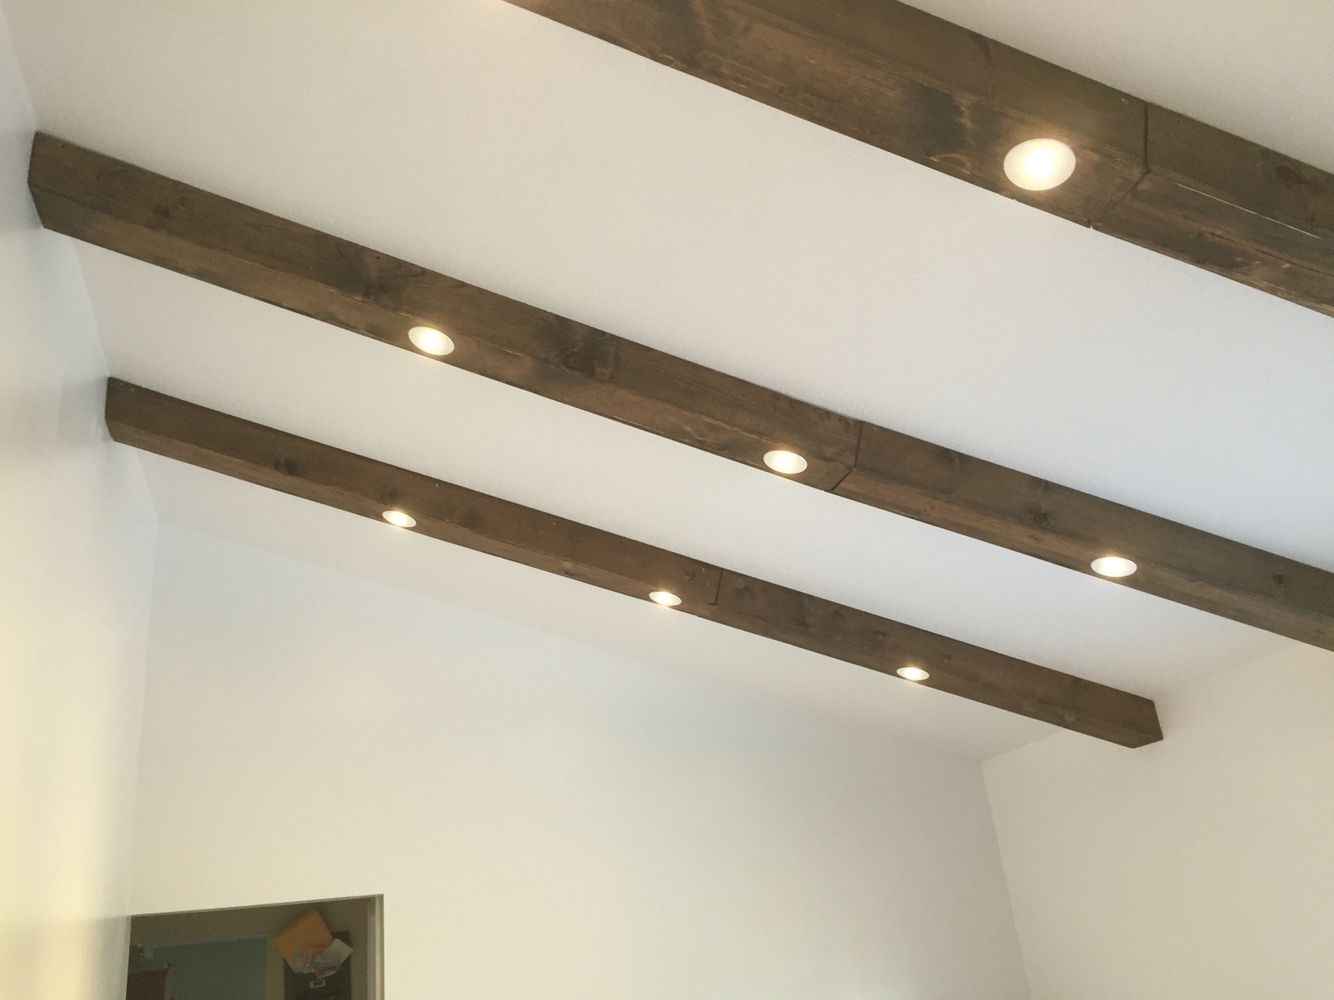 Ceiling Lighting Faux Wood Beams With Recessed Lights Diy Furniture In